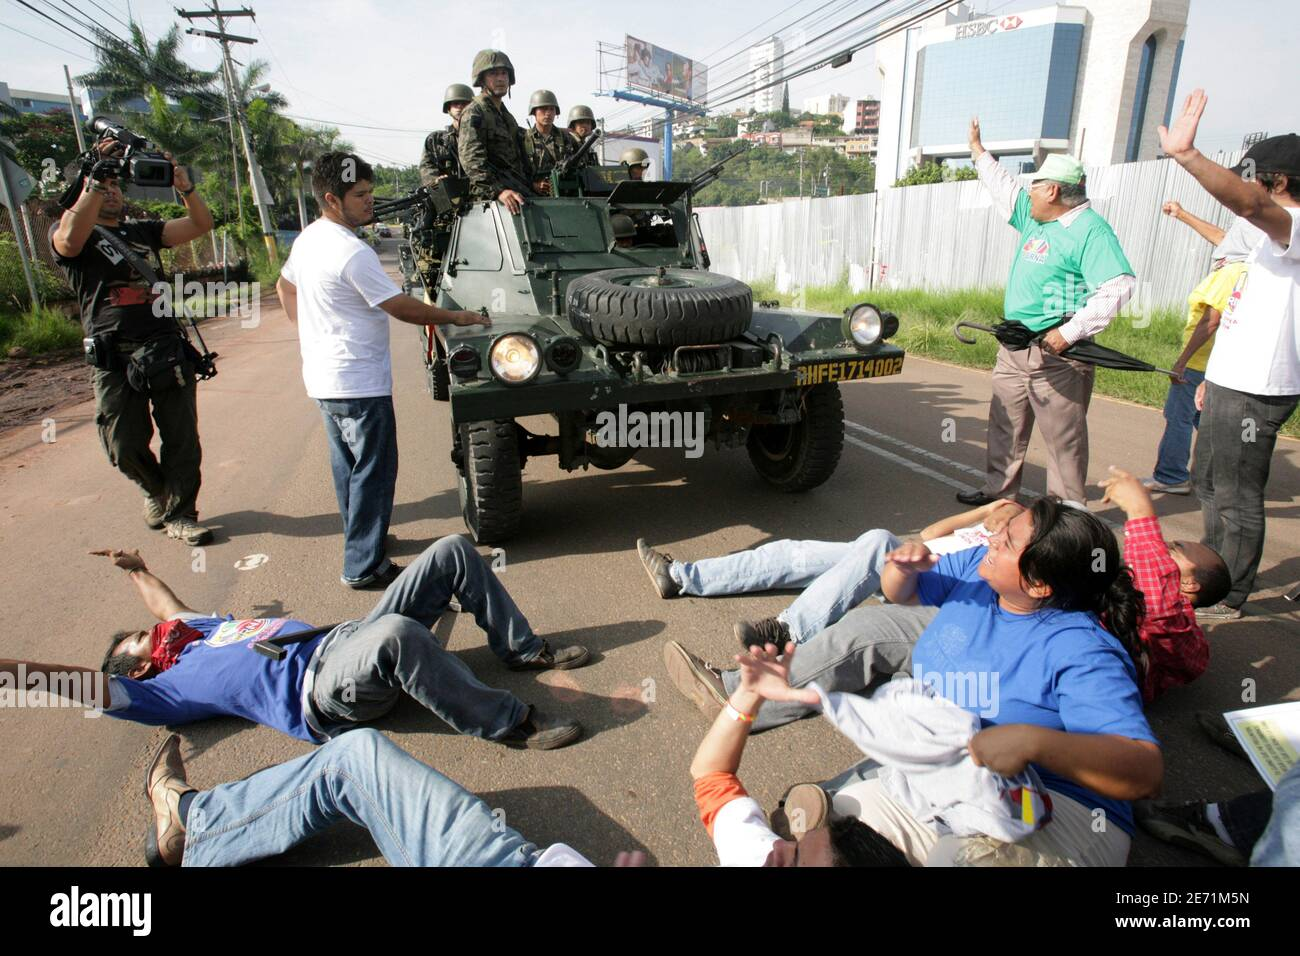 Supporters of Honduras' President Manuel Zelaya block a street to prevent military vehicles from passing near the presidential residency in Tegucigalpa June 28, 2009. Witnesses said Zelaya was detained at home by troops in a constitutional crisis over his attempt to win re-election. CNN's Spanish-language channel later quoted Costa Rican officials as saying he was in Costa Rica and seeking political asylum. REUTERS/Oswaldo Rivas (HONDURAS POLITICS CONFLICT MILITARY) Stock Photo